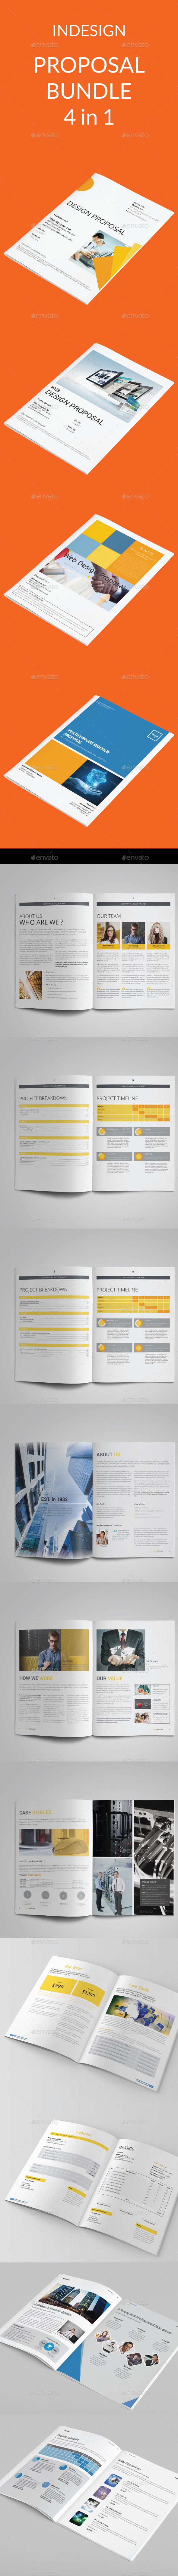 Proposal Bundle | 4 in 1 - Proposals & Invoices Stationery